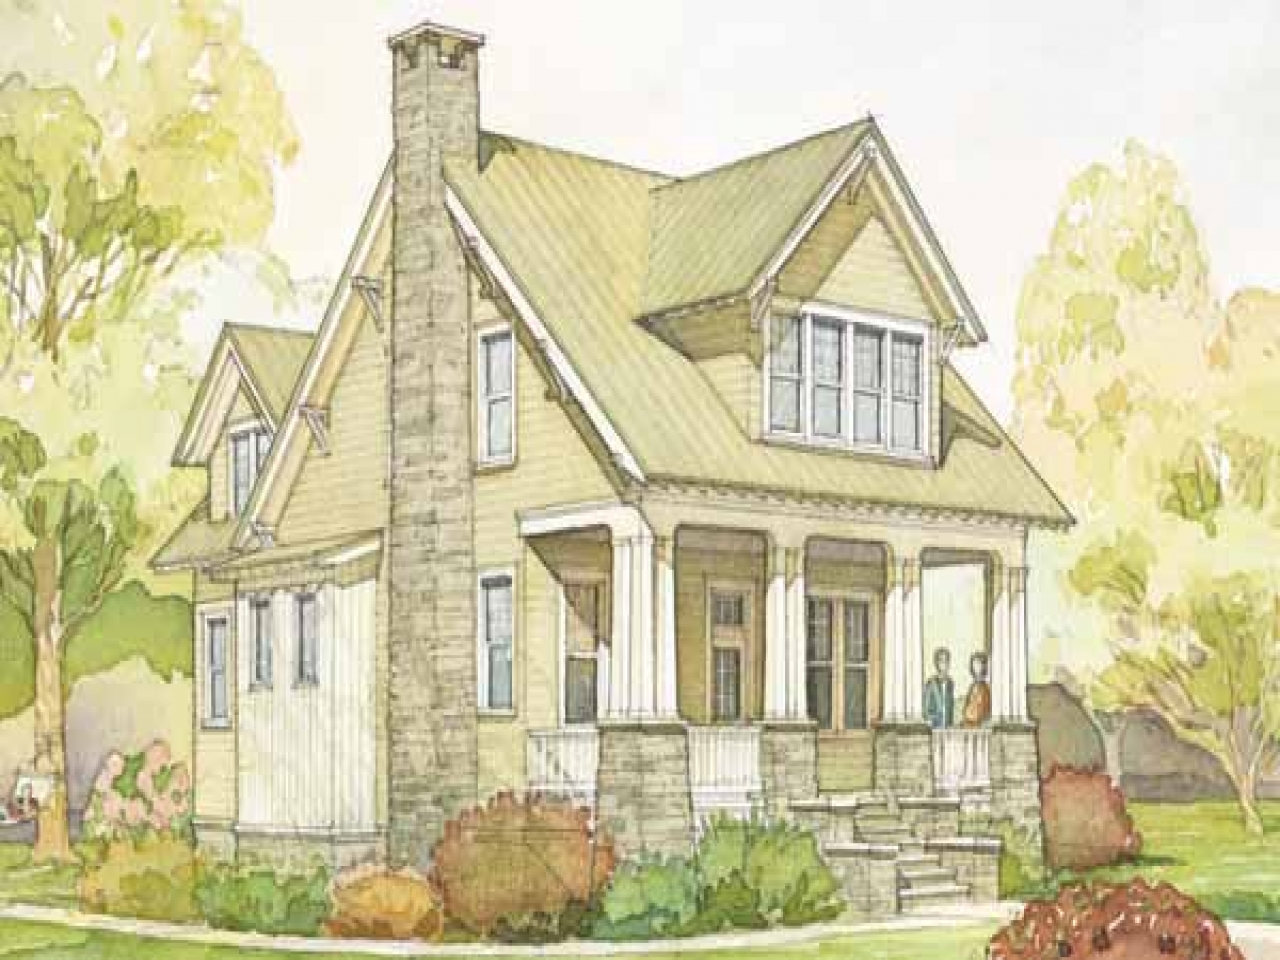 Southern living cottage style house plans low country for Southern cottage house plans with photos